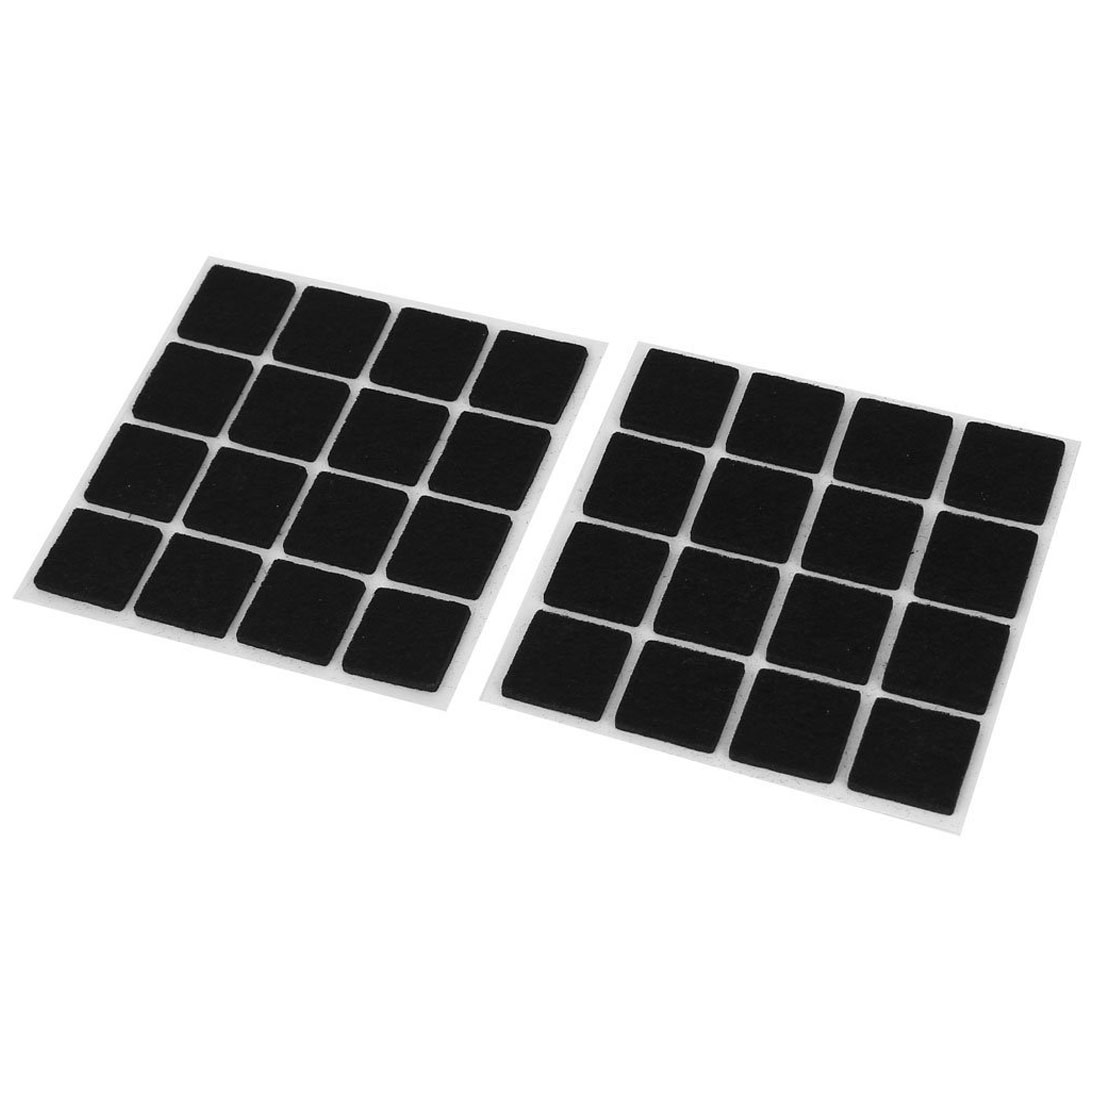 Self Adhesive Floor Protectors Furniture Felt Square Pads 32pcs